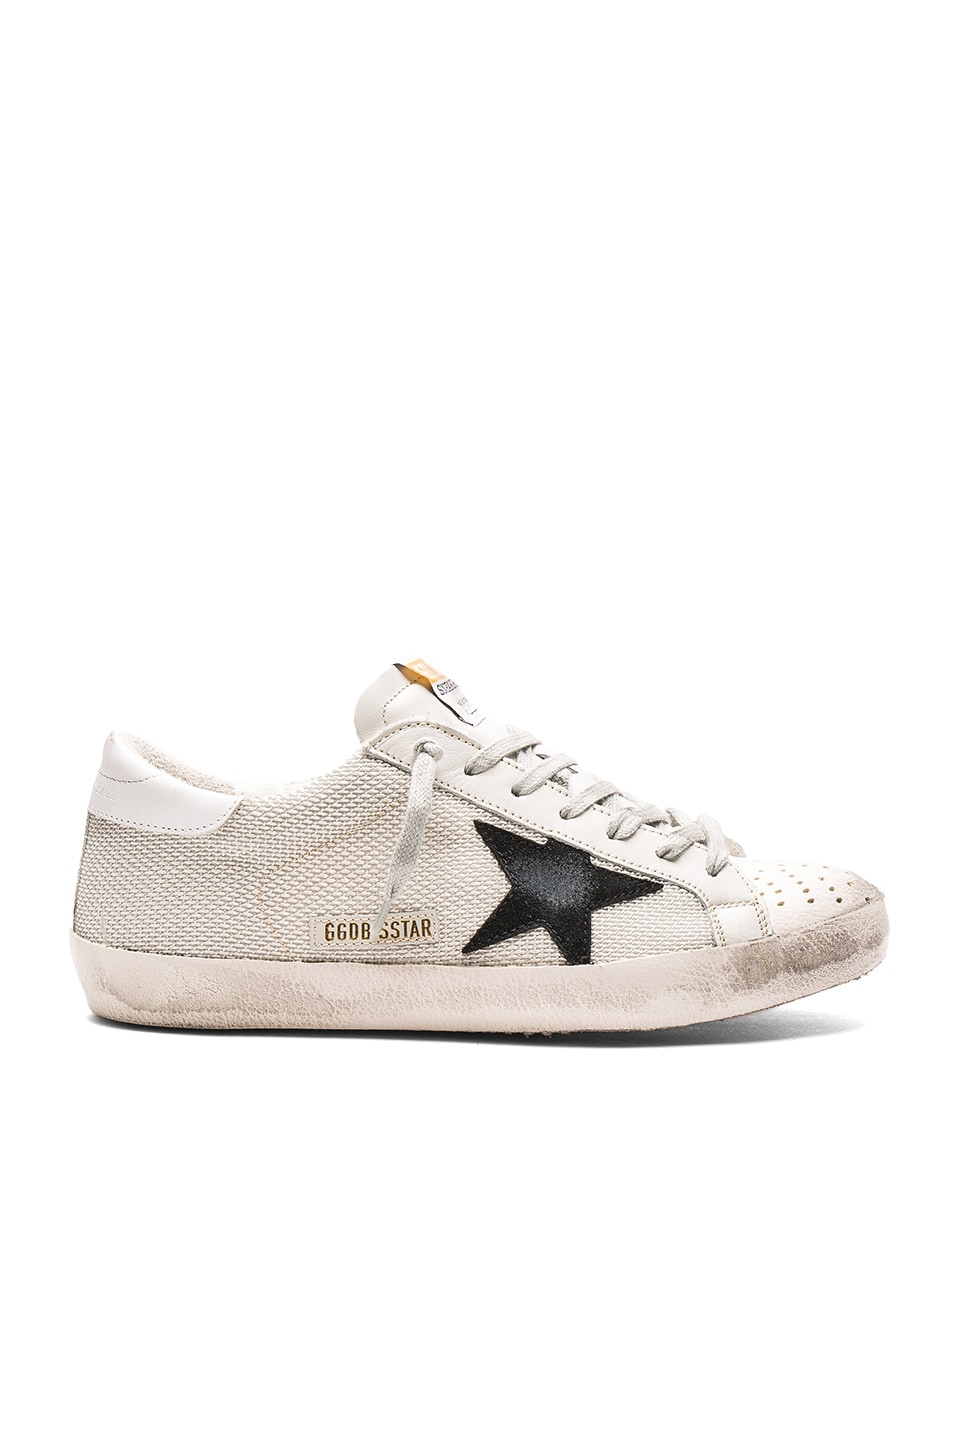 Superstar Sneakers by Golden Goose